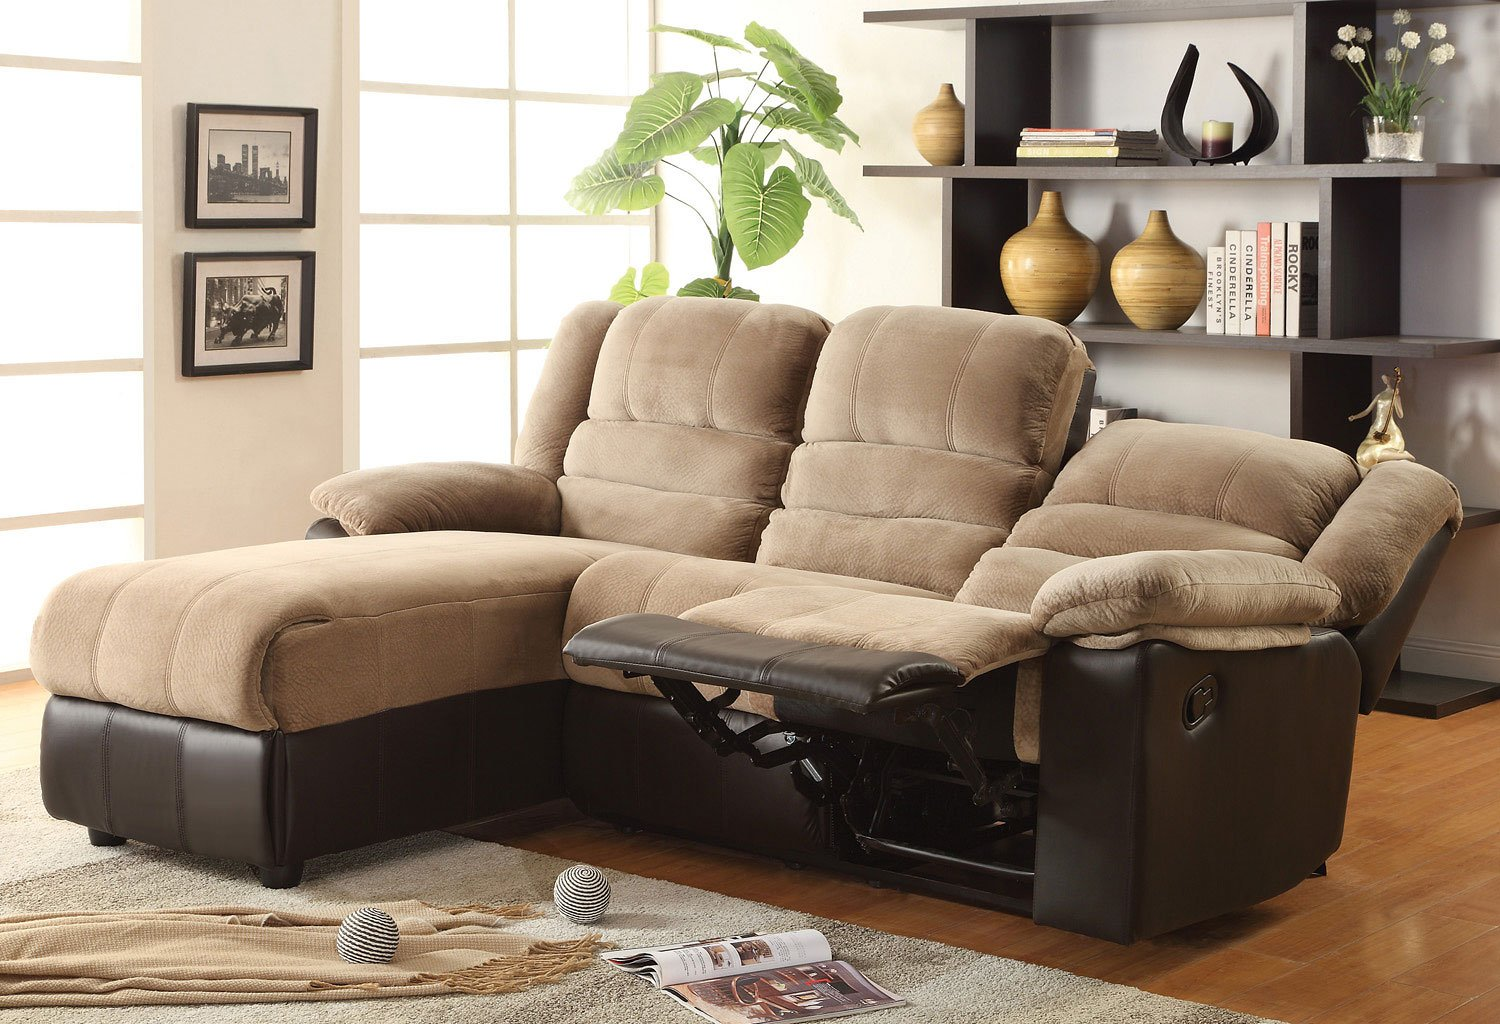 Huxley Reclining Left Chaise Sofa Sectionals Living Room Furniture Living Room